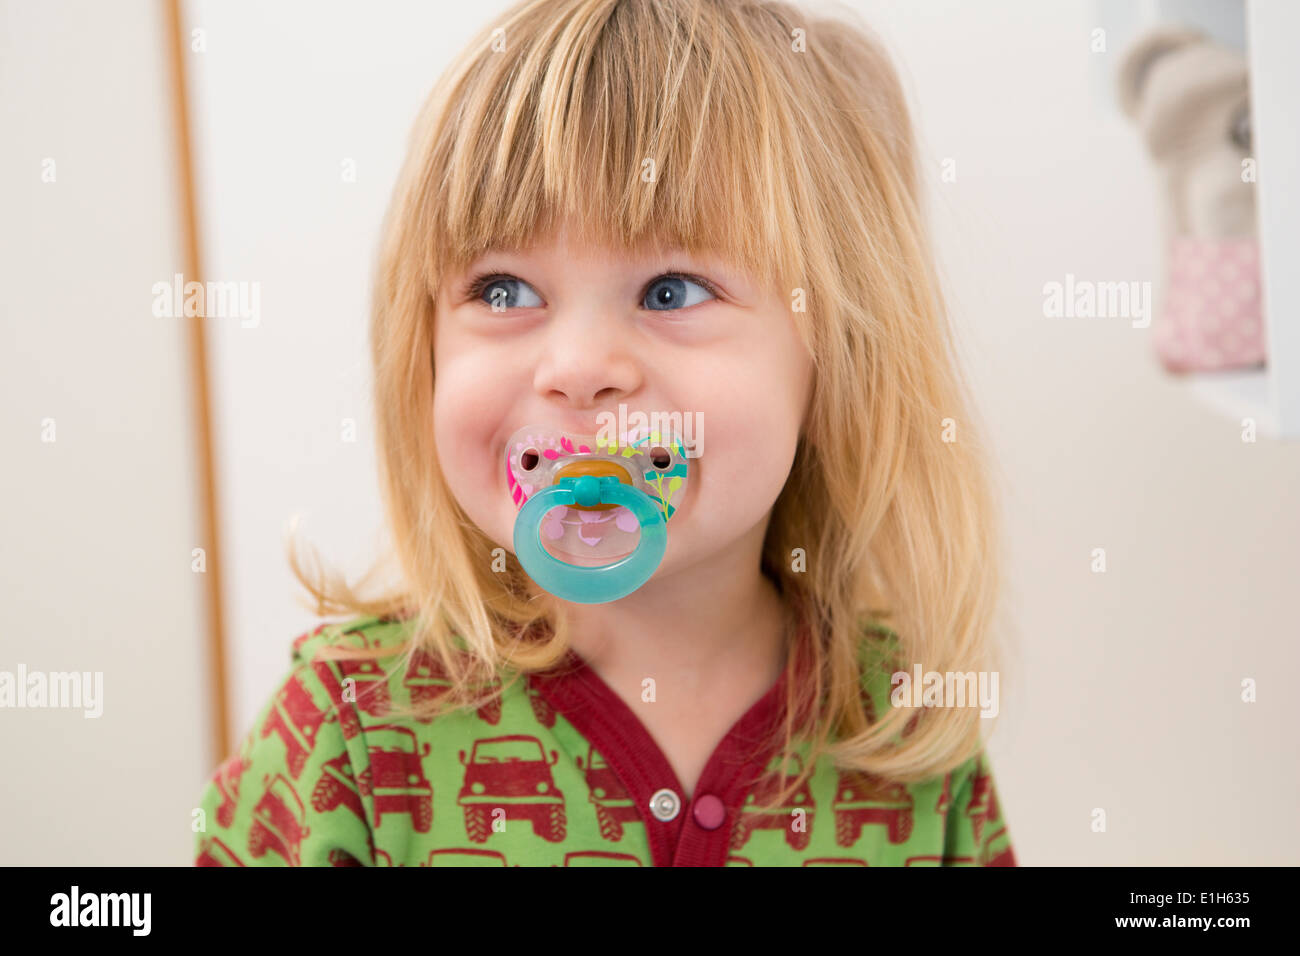 Portrait of happy 2 year old girl with pacifier - Stock Image